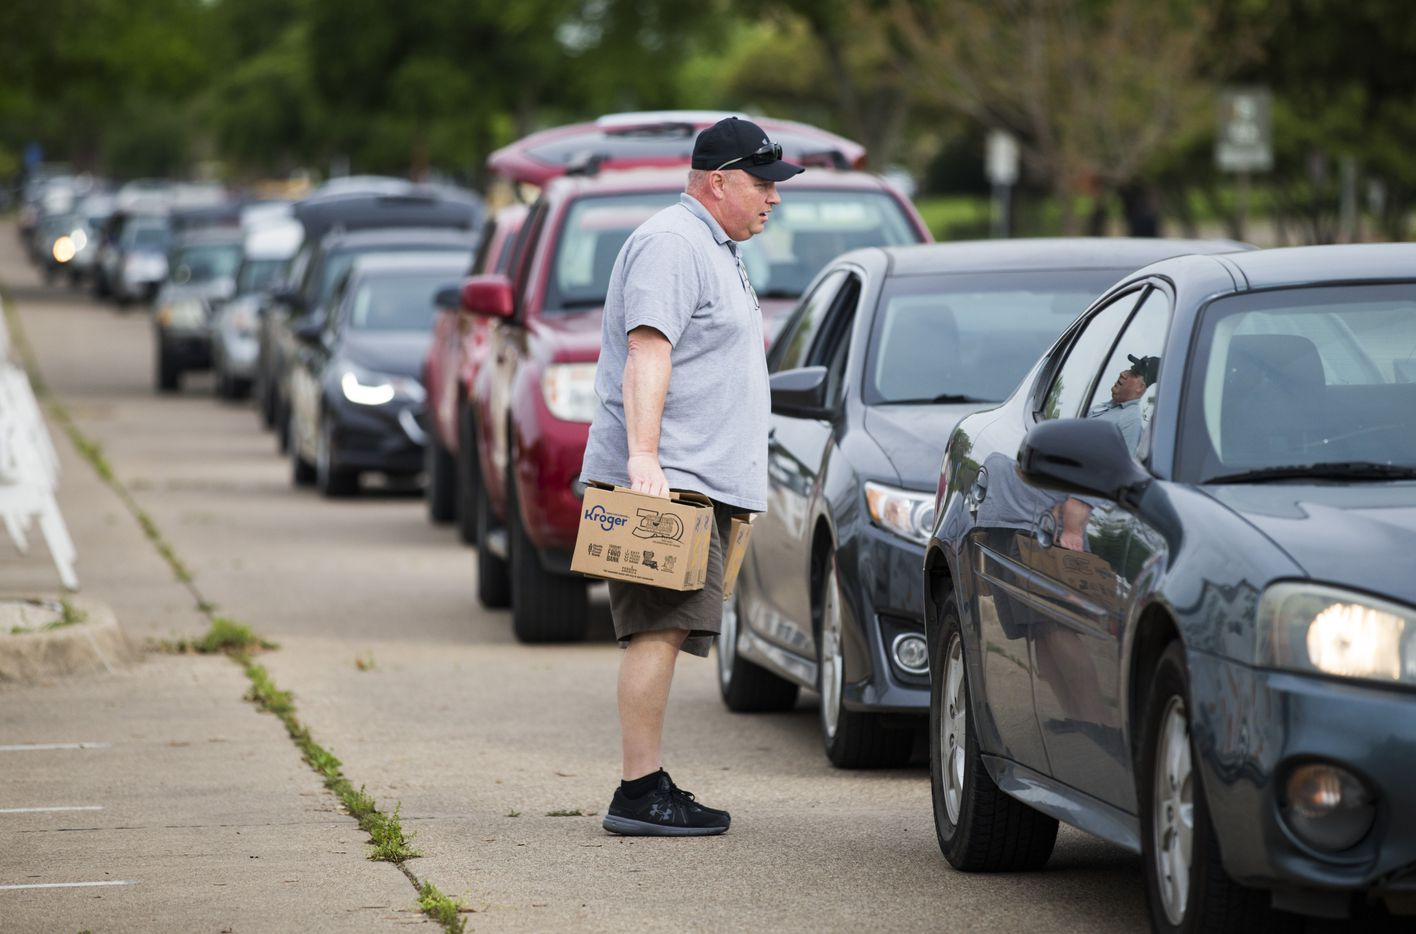 Volunteer Greg Cunningham approaches a car as it lines up receive food from the mobile pantry.